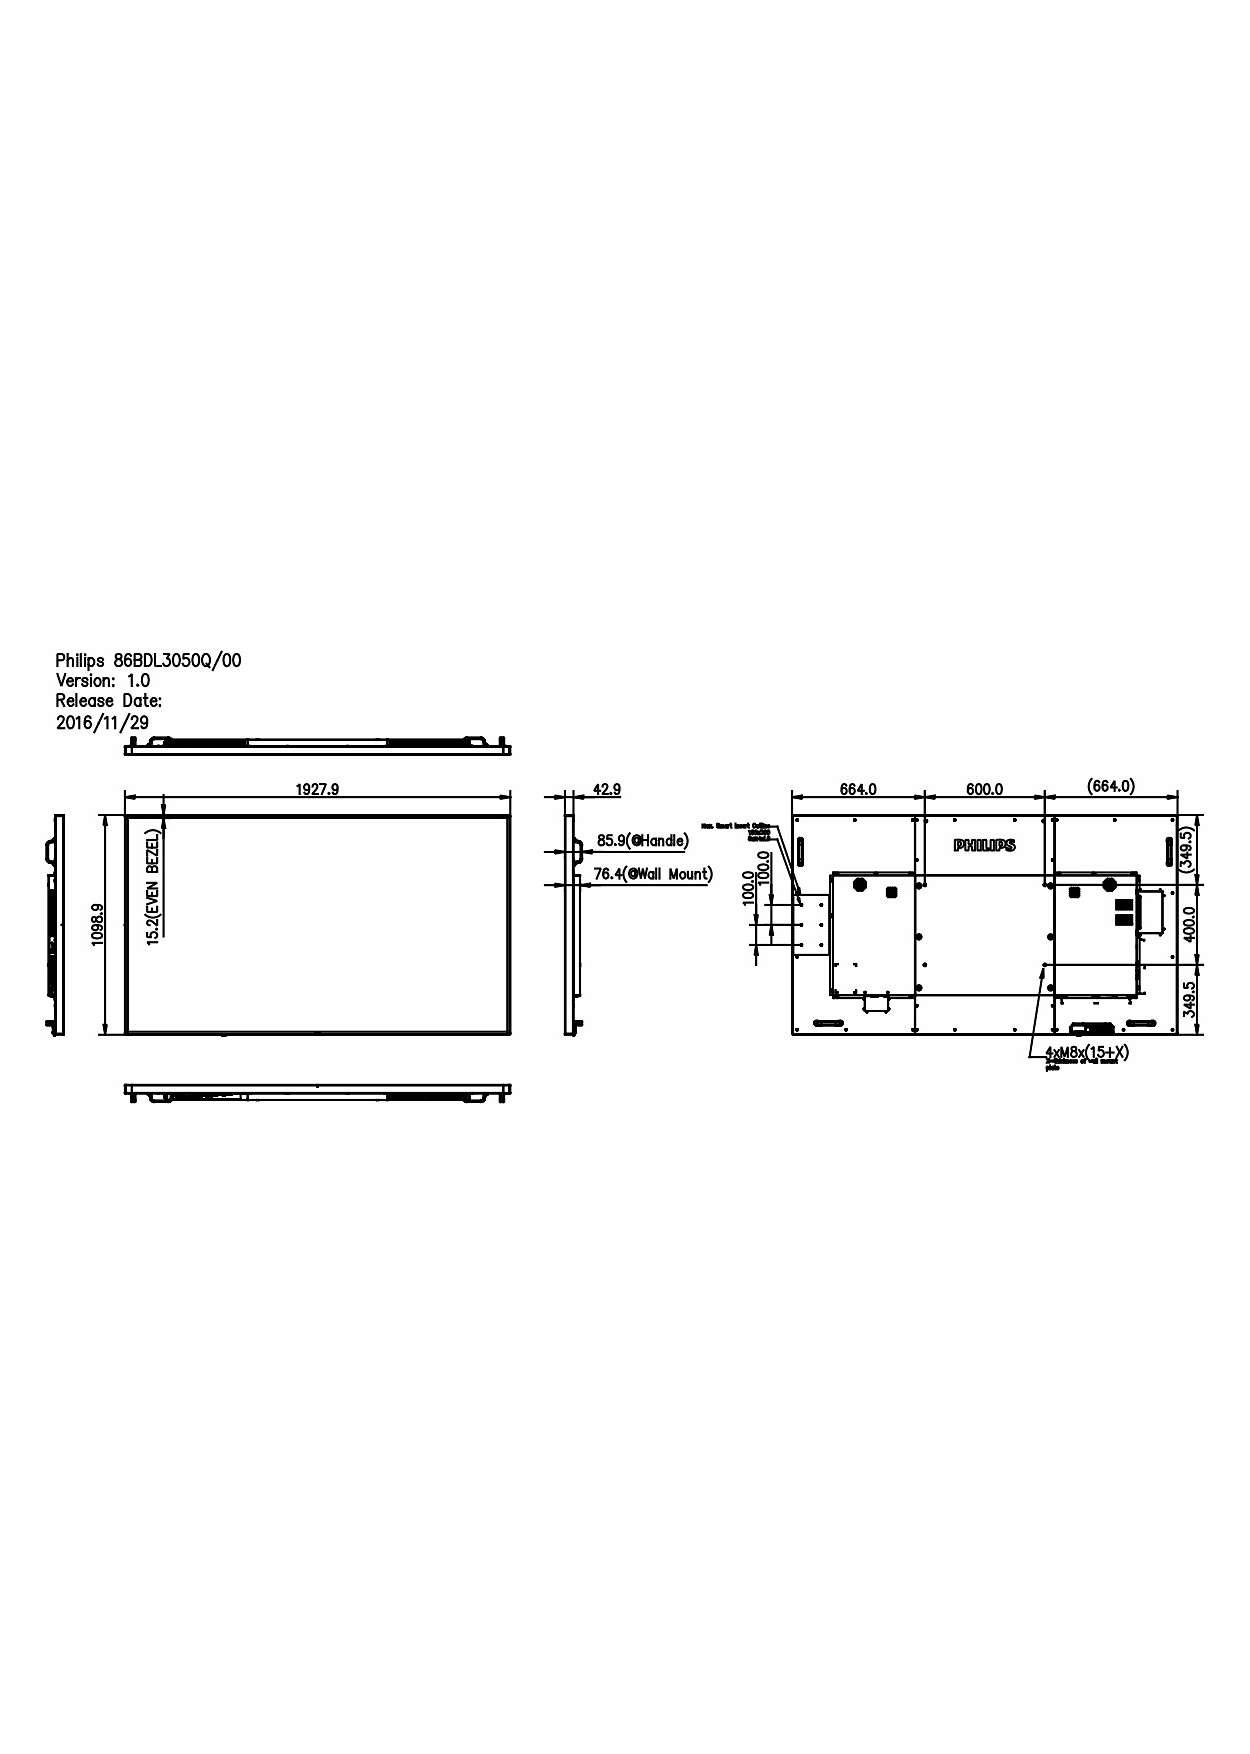 Q Line Display 86bdl3050q 00 Philips Main Board Schematic Circuit Diagram Intensify Your Signage Experience